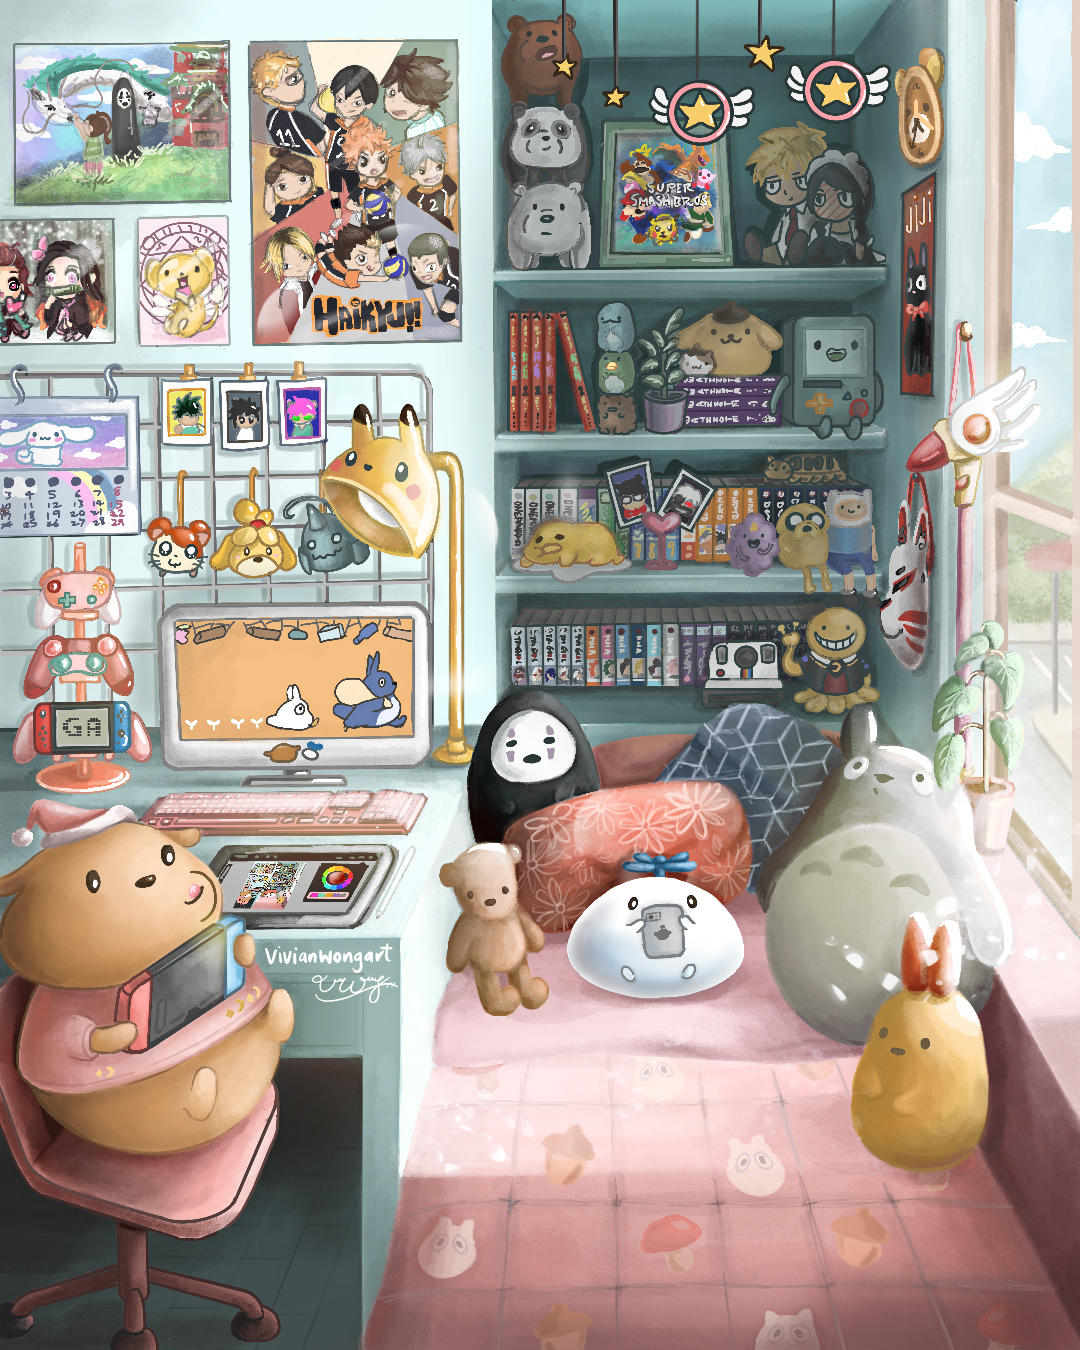 Gu&Bu's Dream Room